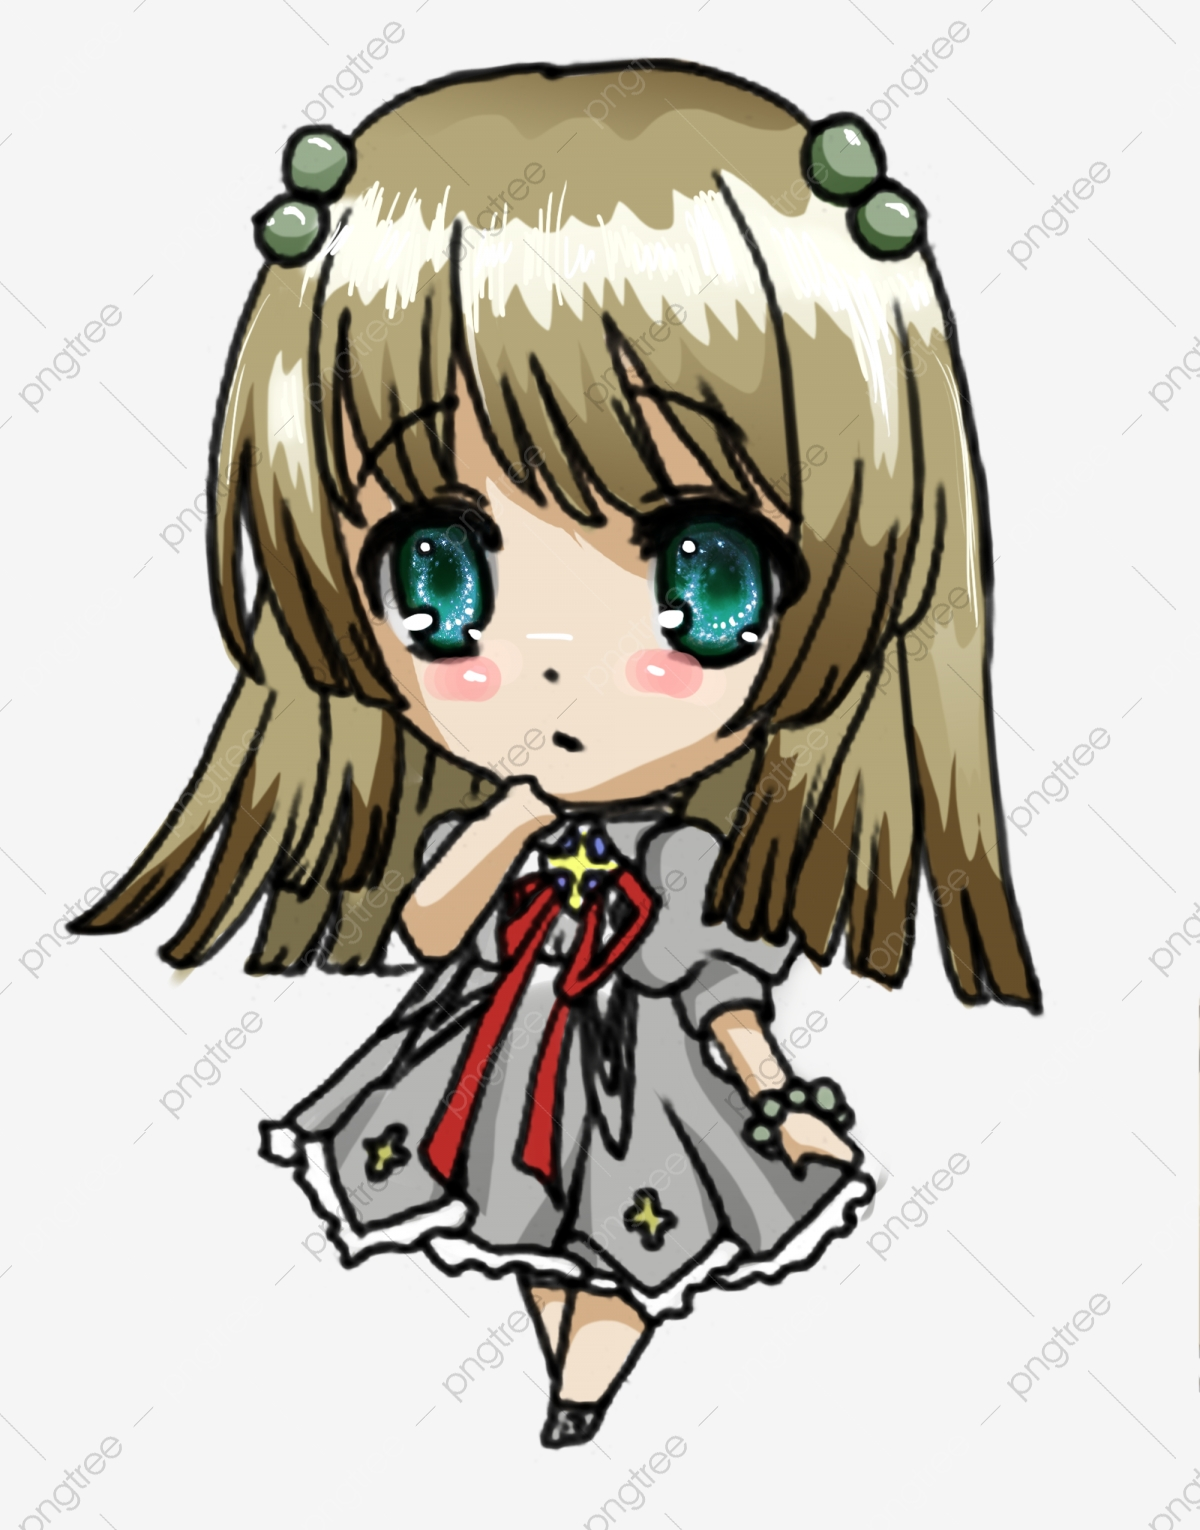 Campus Japanese Q Version Big Eyes Lovely Sprouting Beautiful Girl Png Transparent Clipart Image And Psd File For Free Download